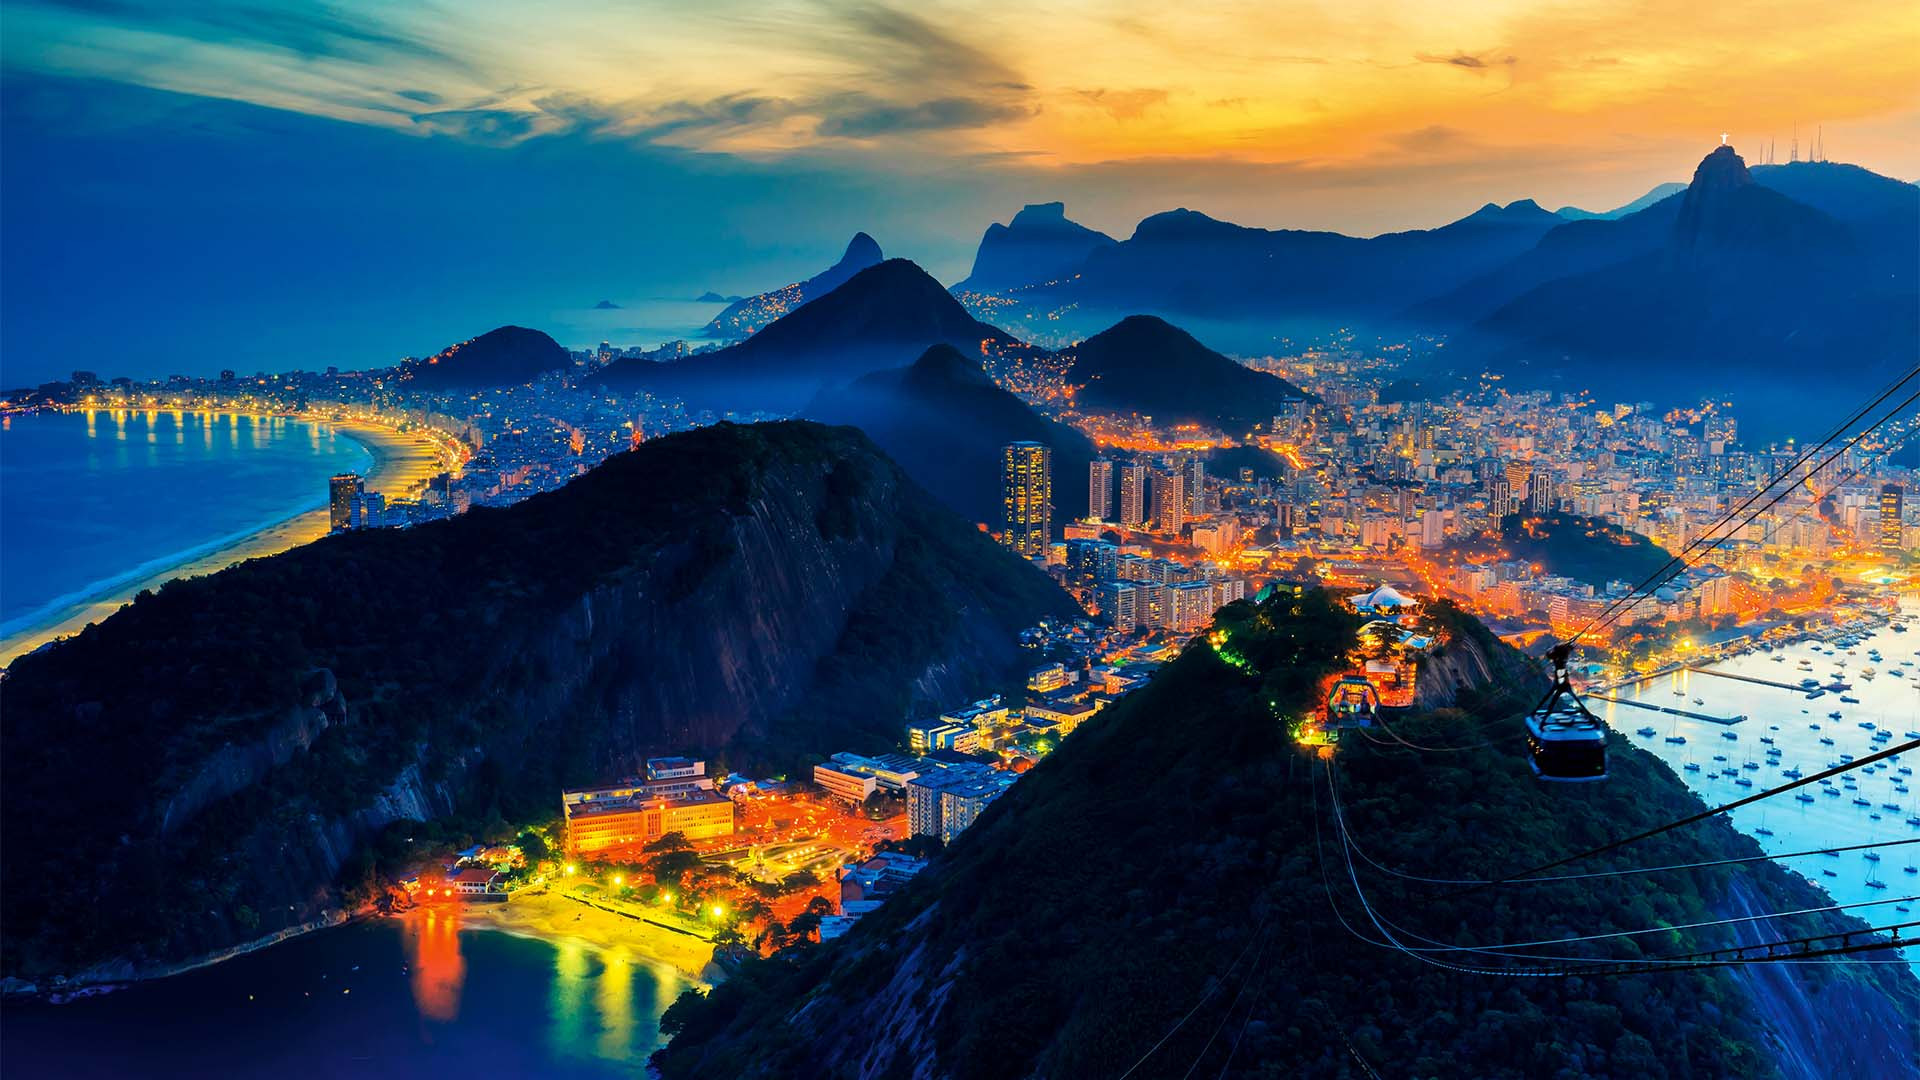 Photograph of Rio lit-up at night